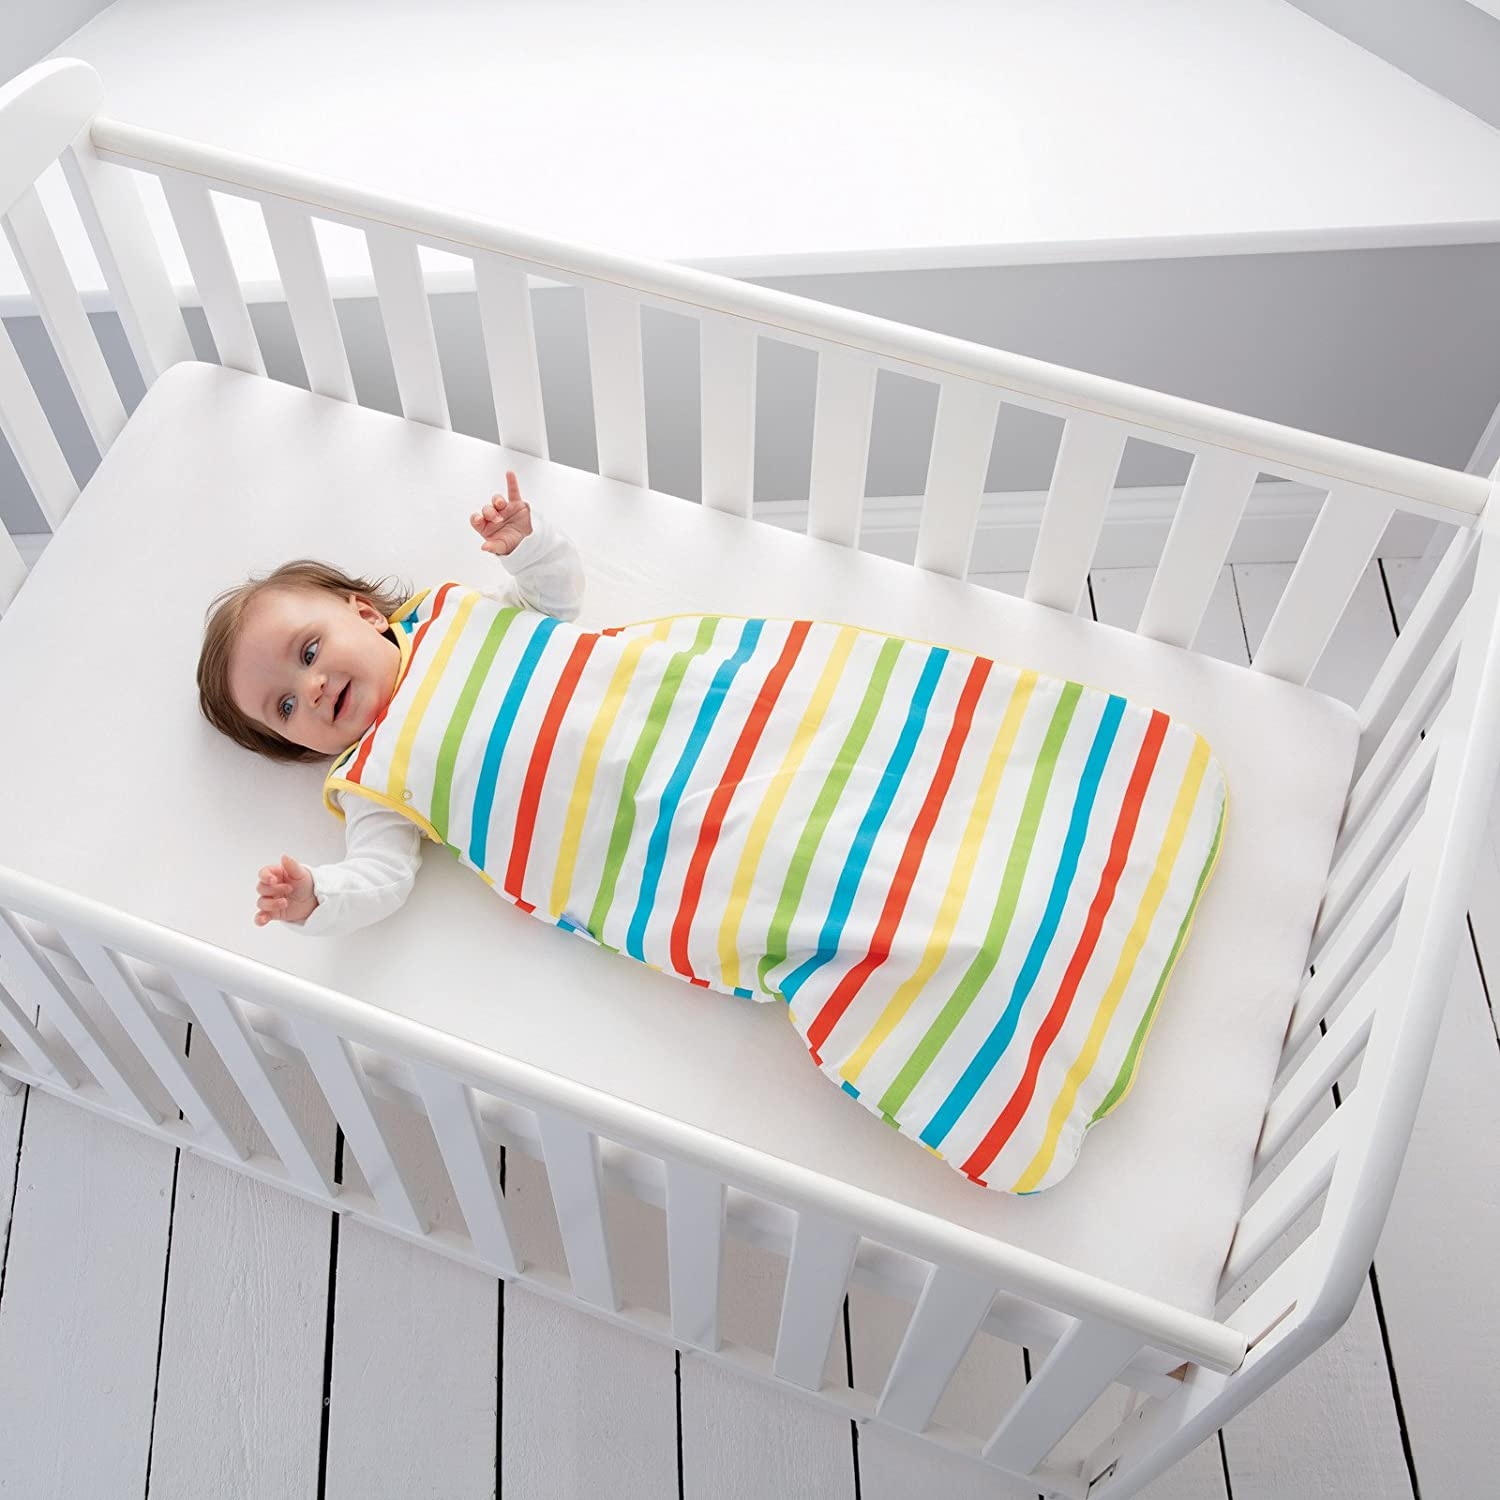 The Gro Company Rainbow Stripe Grobag Baby Sleeping Bag Wash and Wear Twin Pack 1.0 Tog 0-6 Months